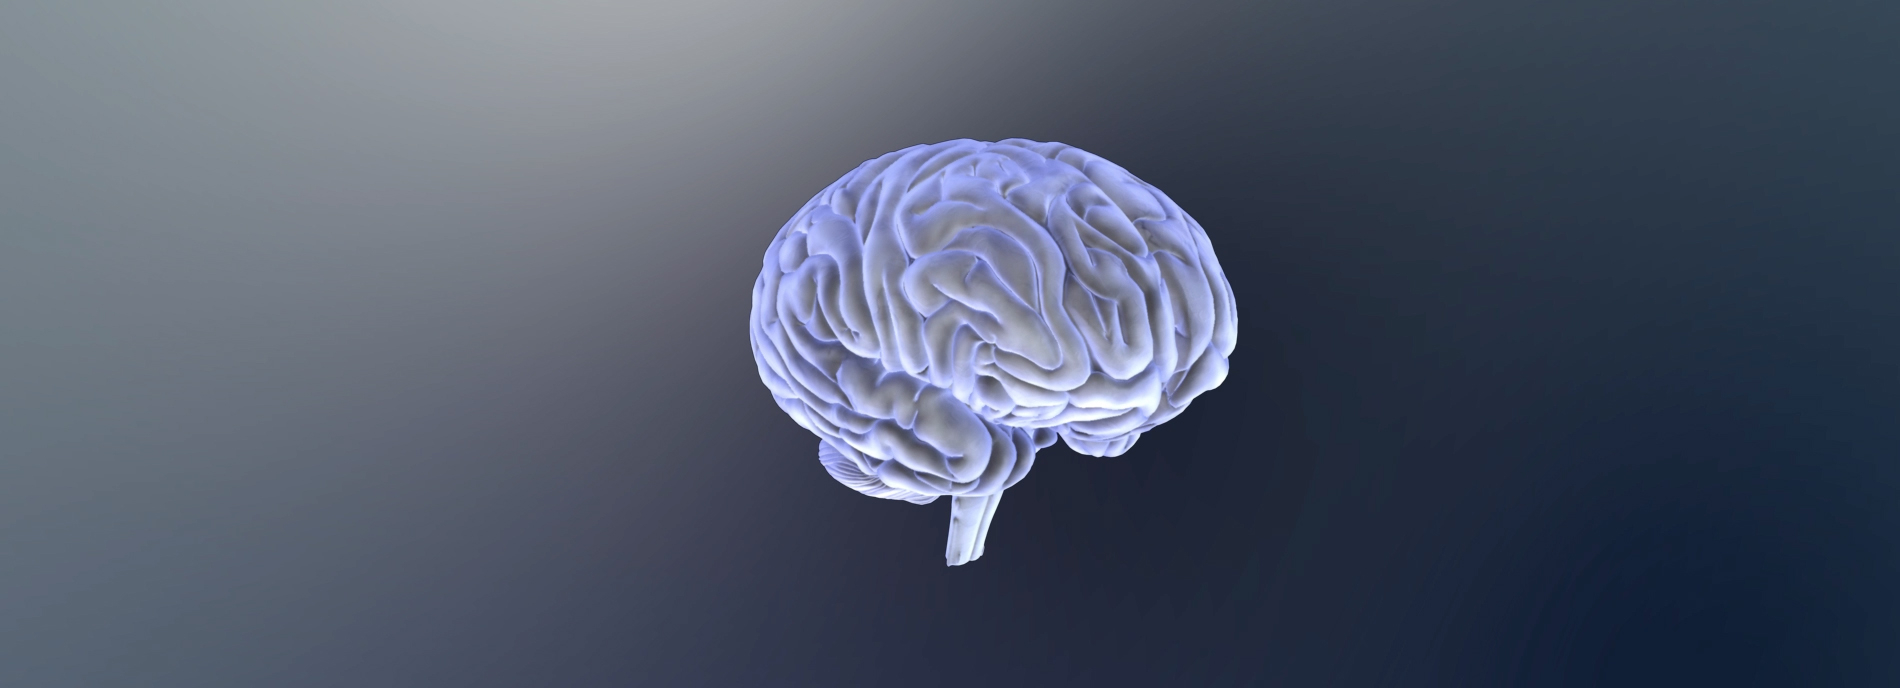 A Brain Link To Autism Scientists Find >> Autism In The Brain Region By Region Spectrum Autism Research News